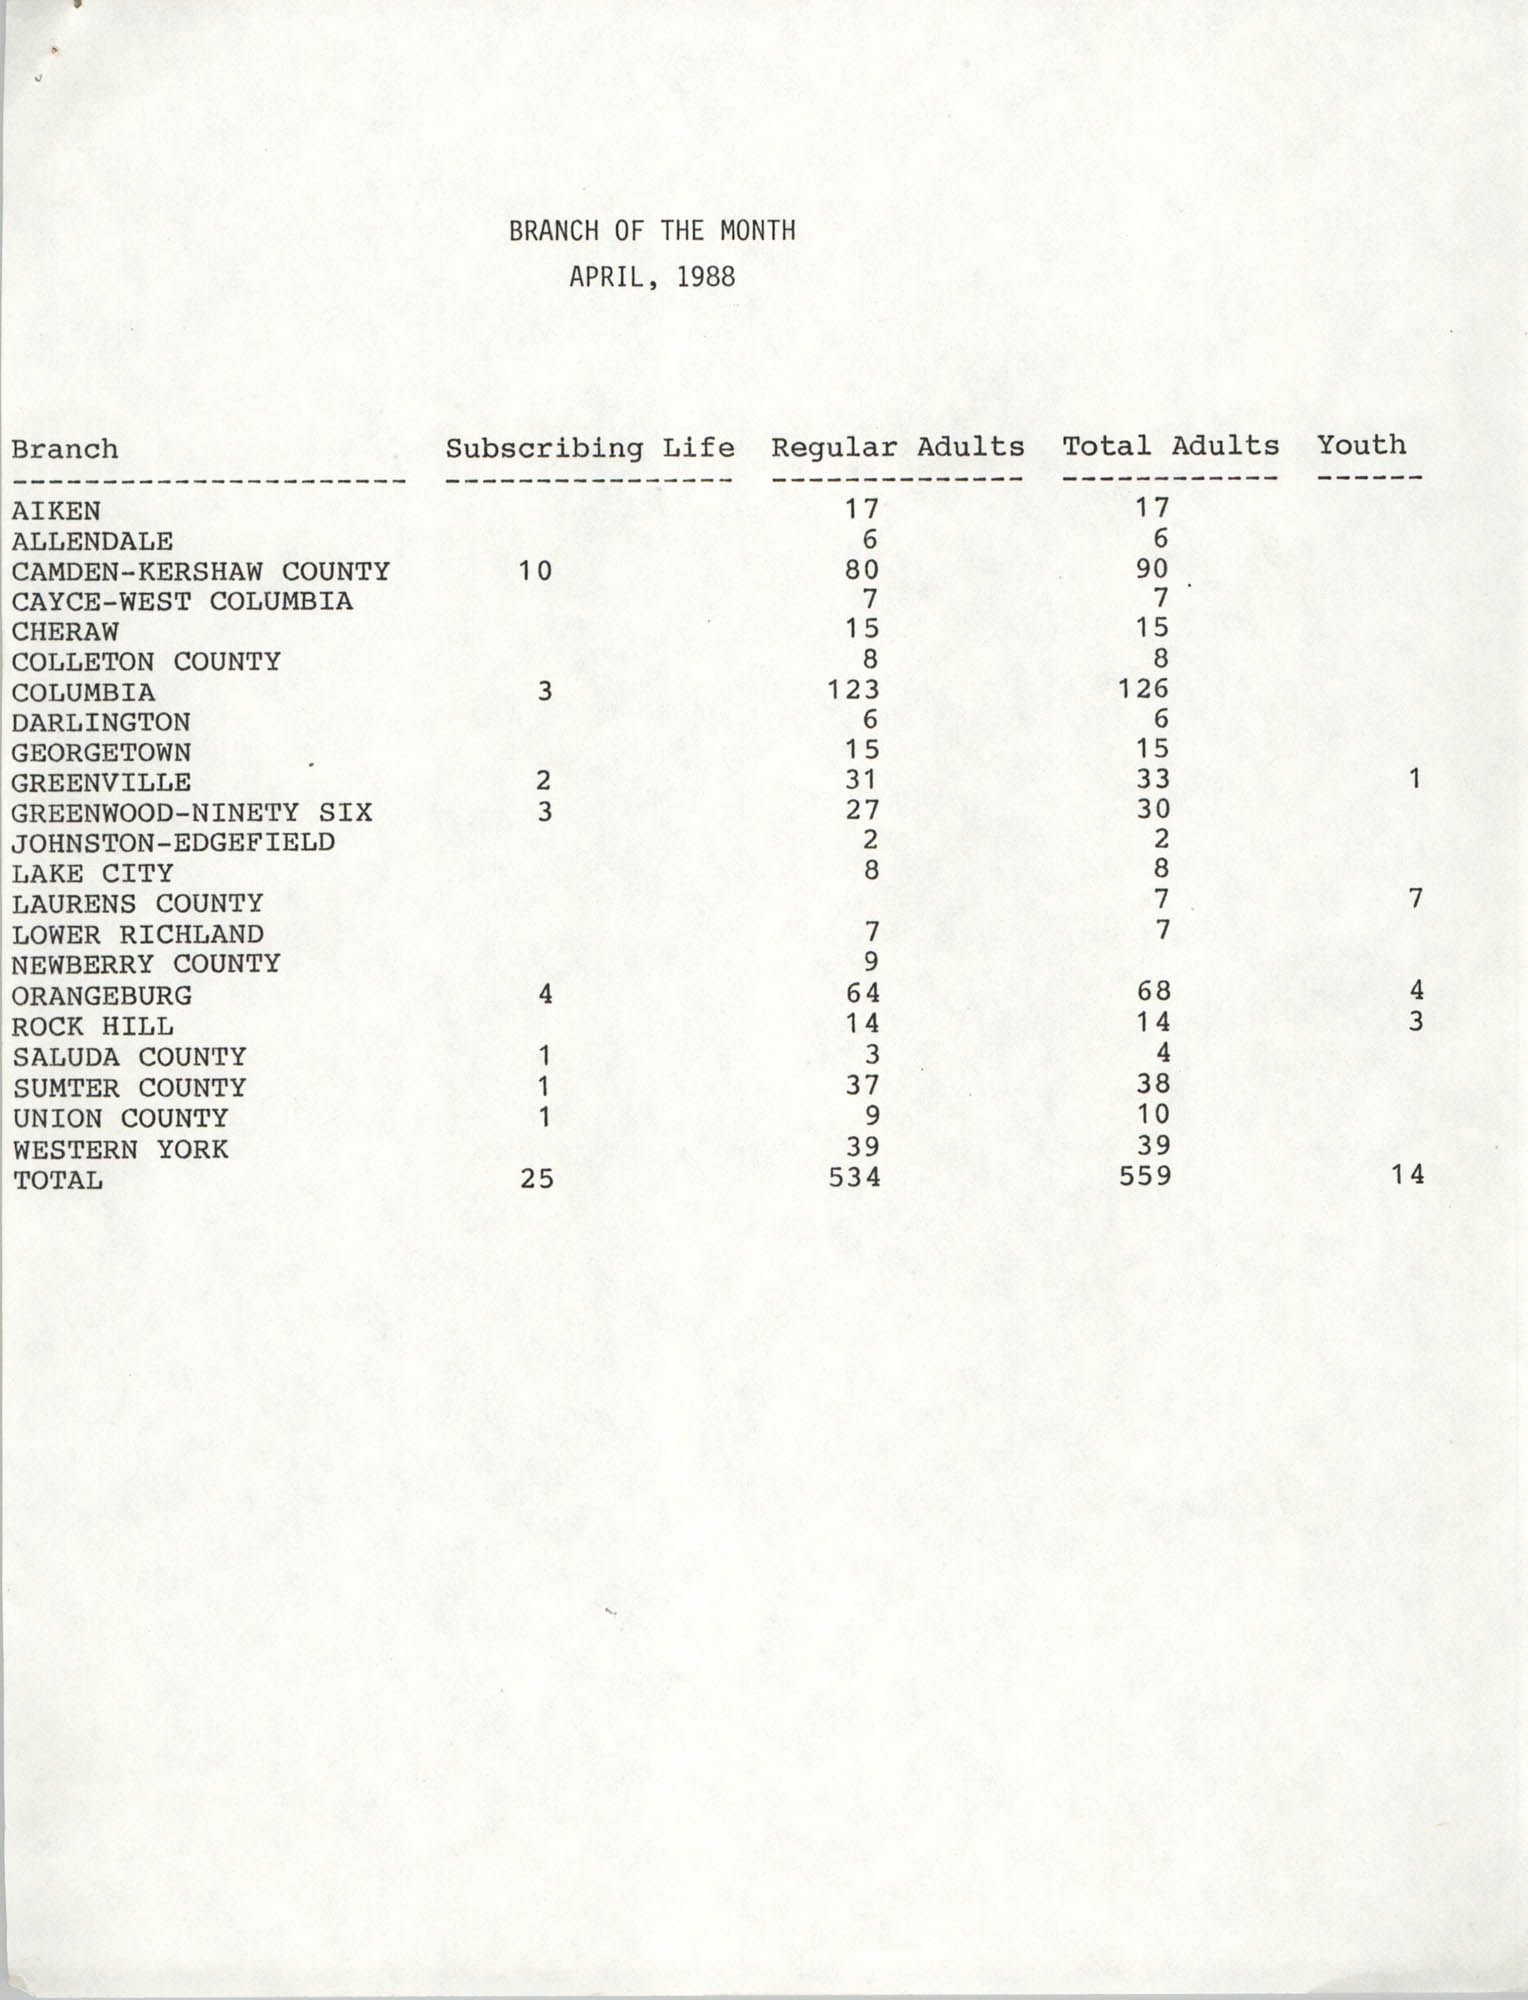 South Carolina Conference of Branches of the NAACP Memorandum, Branch of the Month, April 1988